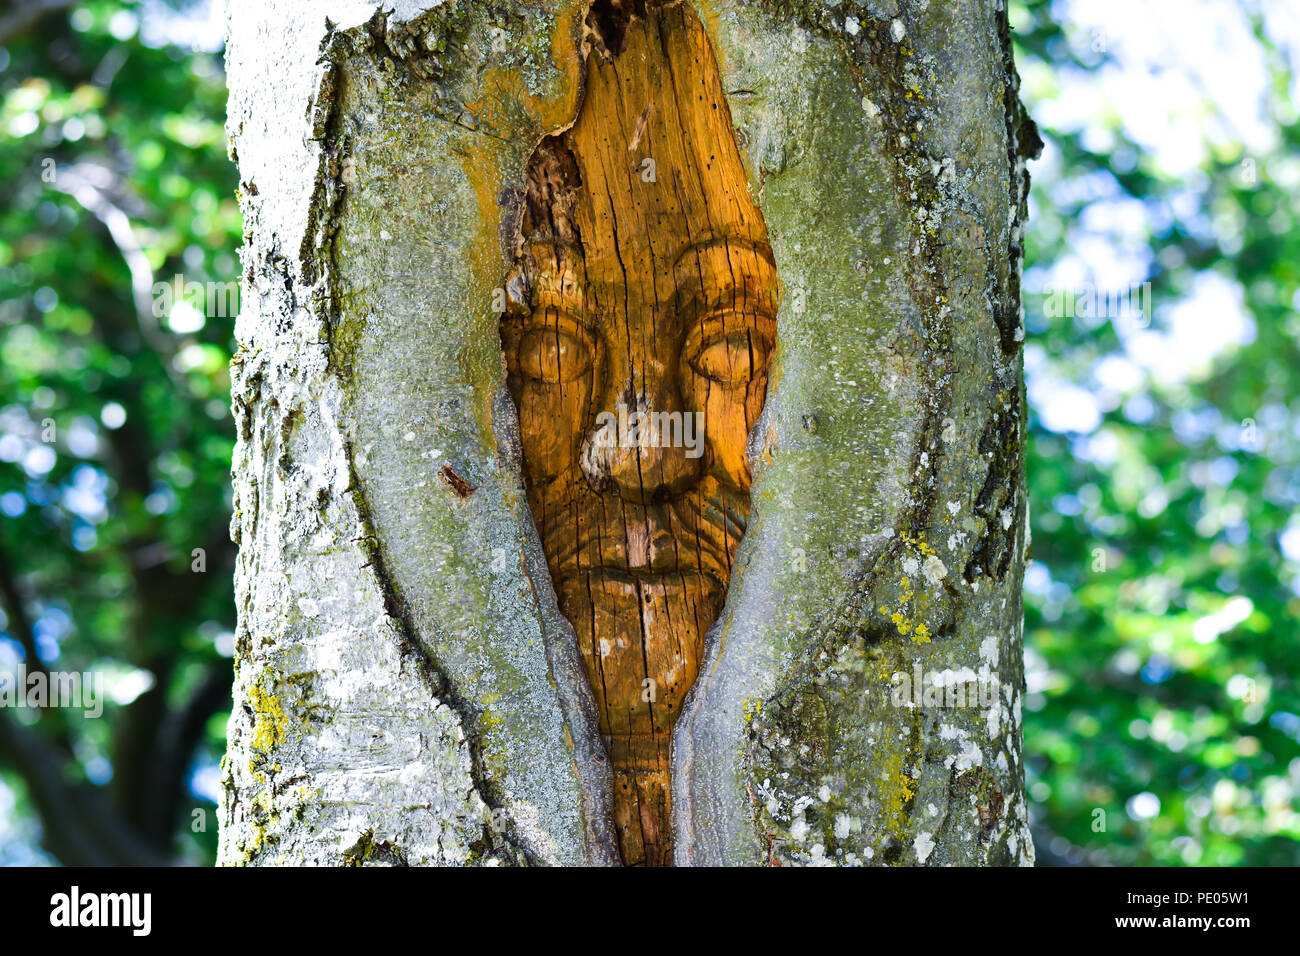 Old women face in a tree - Stock Image